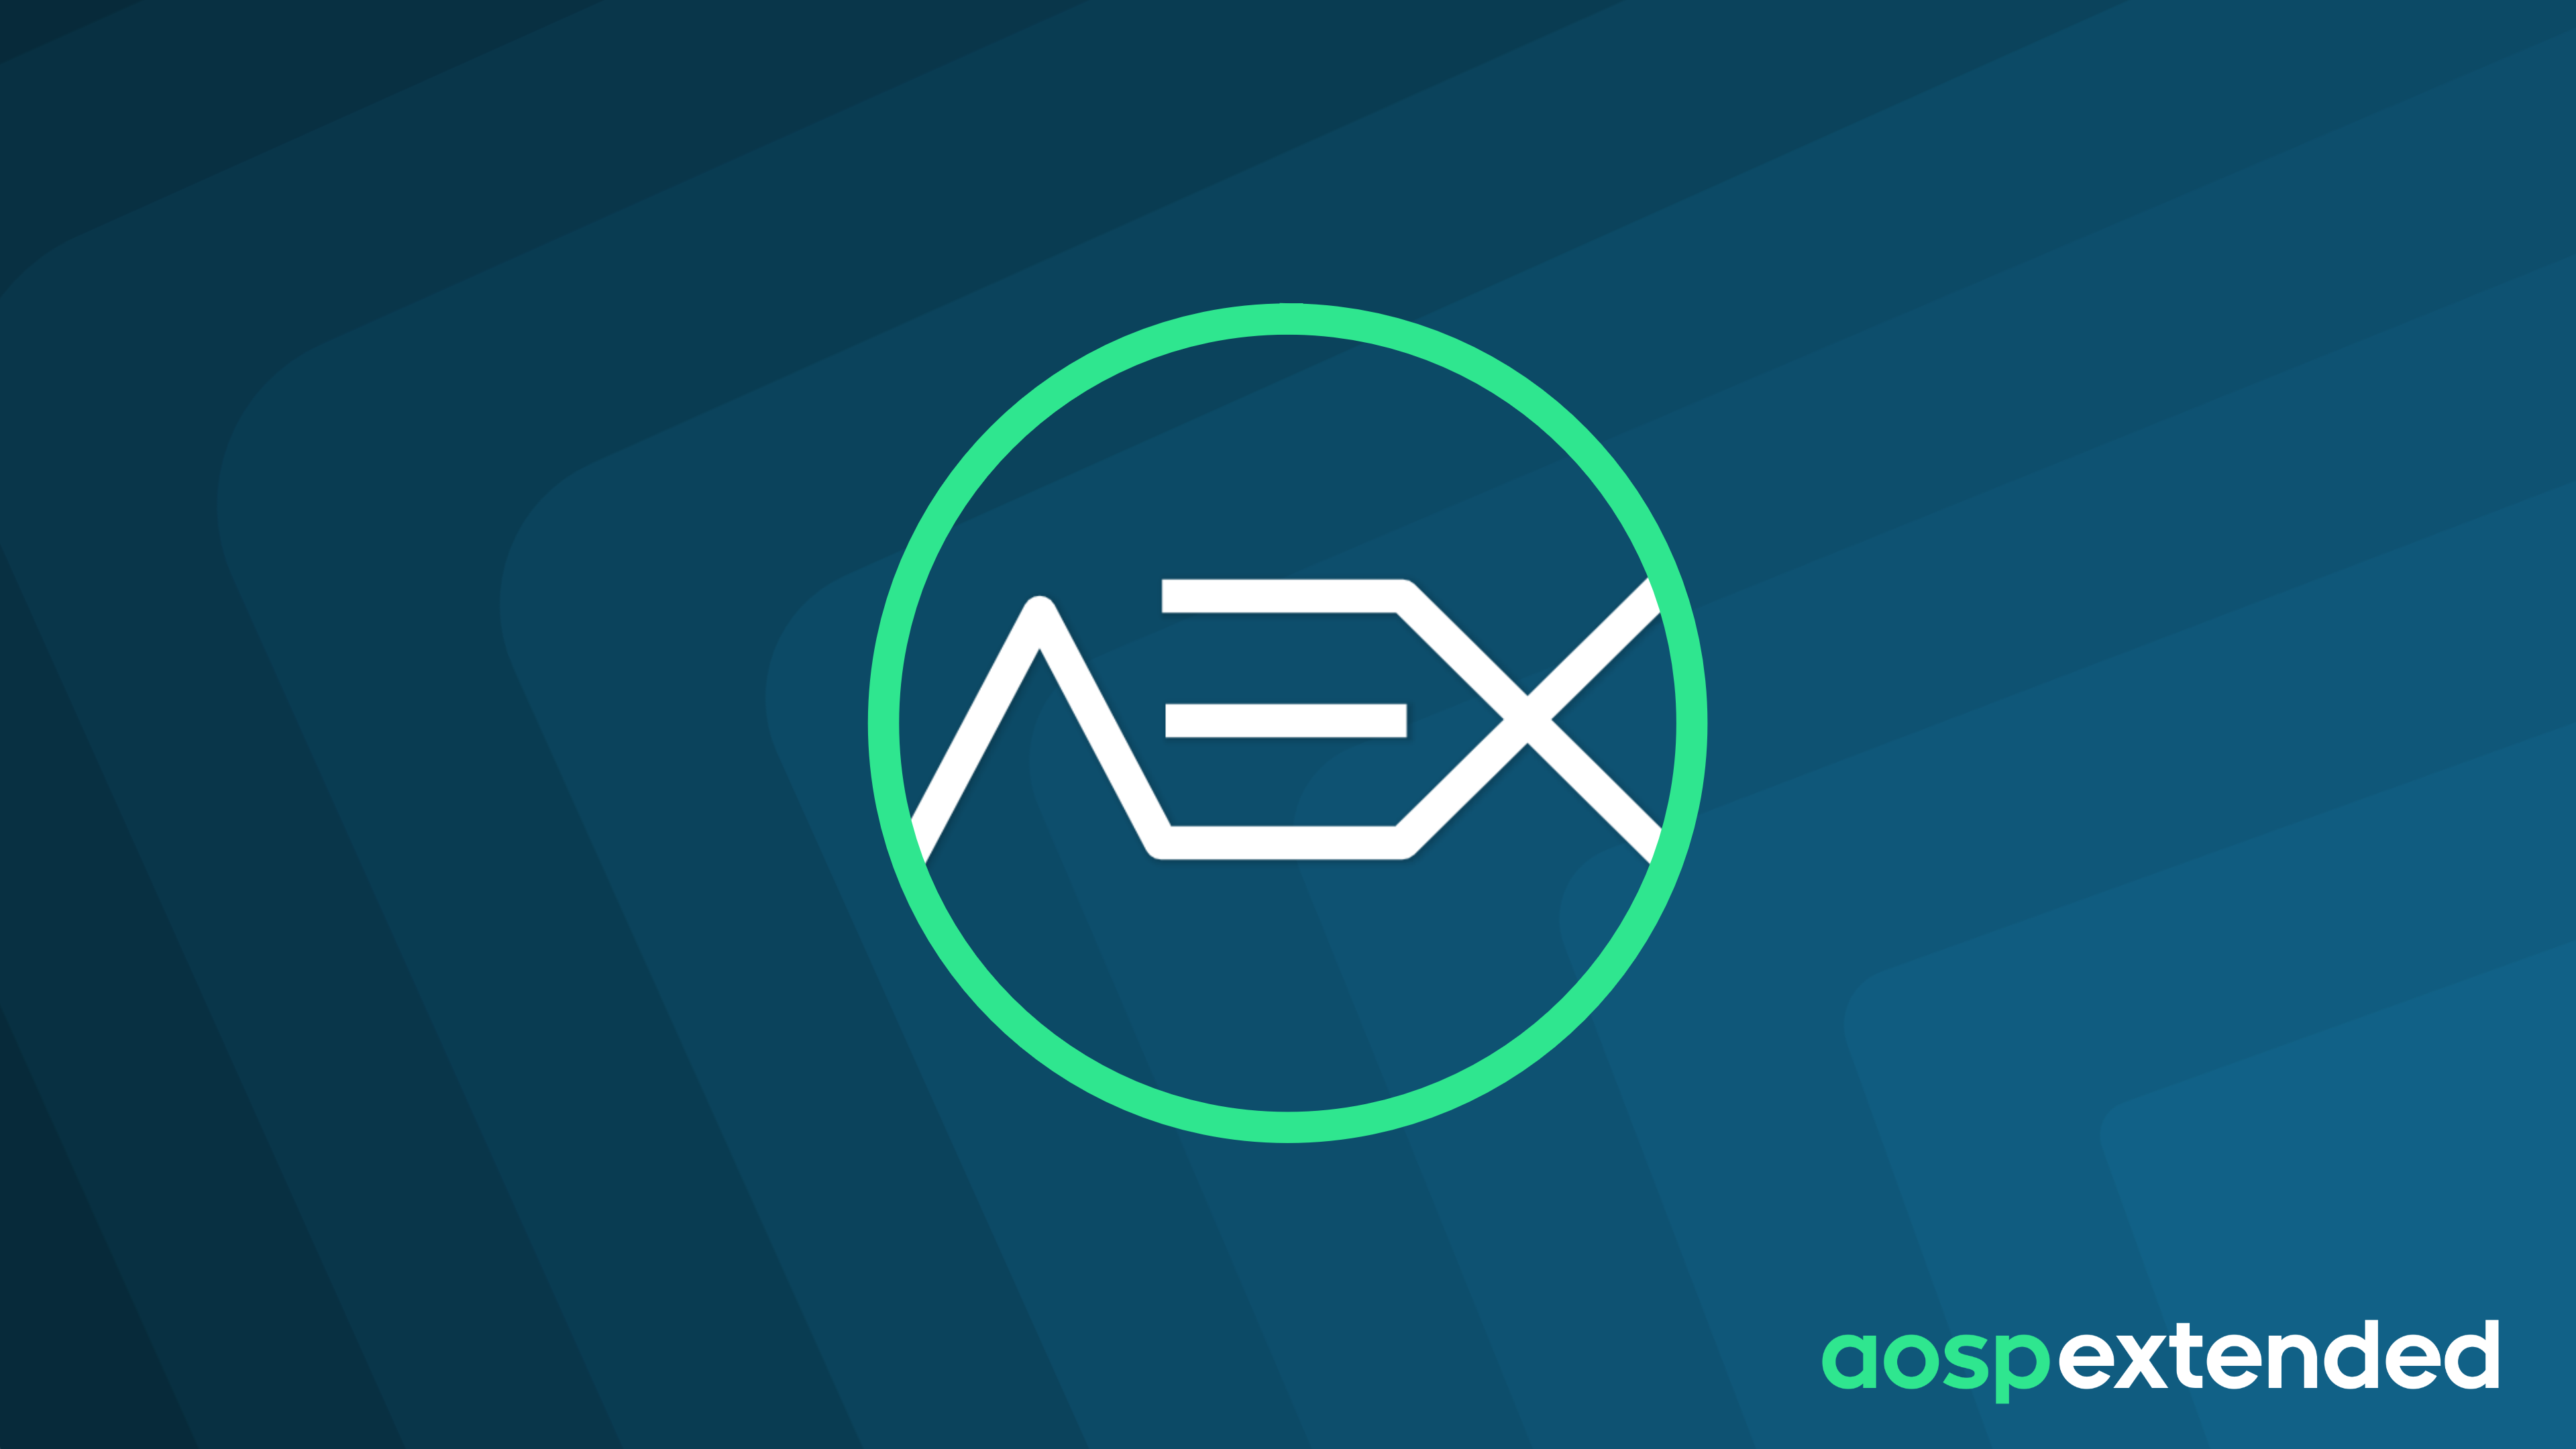 aex.png